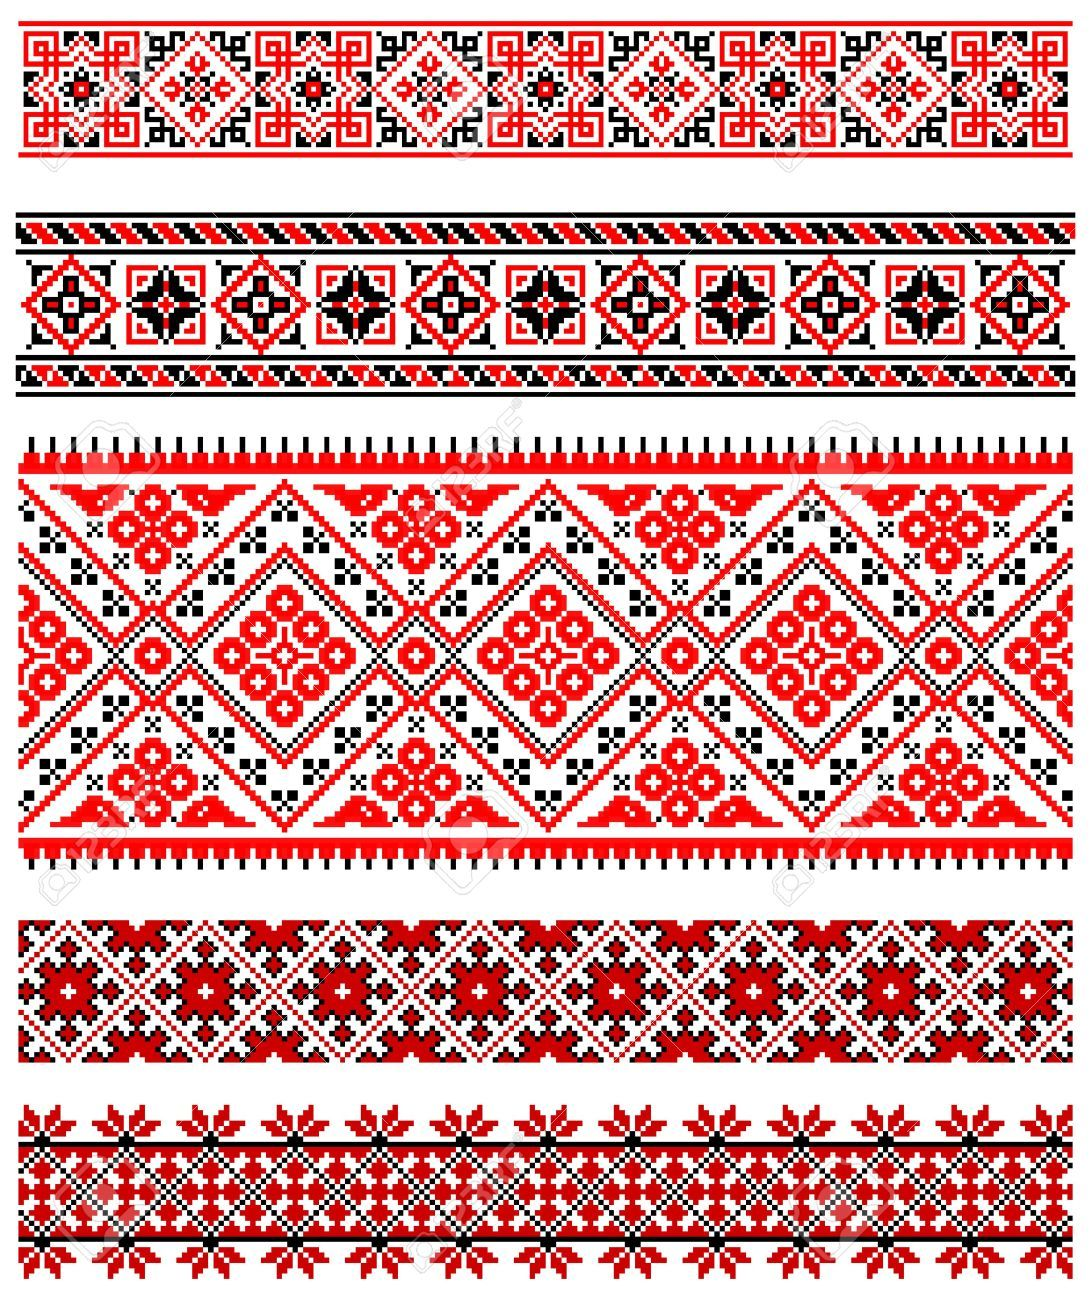 8877453-illustrations-of-ukrainian-embroidery-ornaments-patterns ...